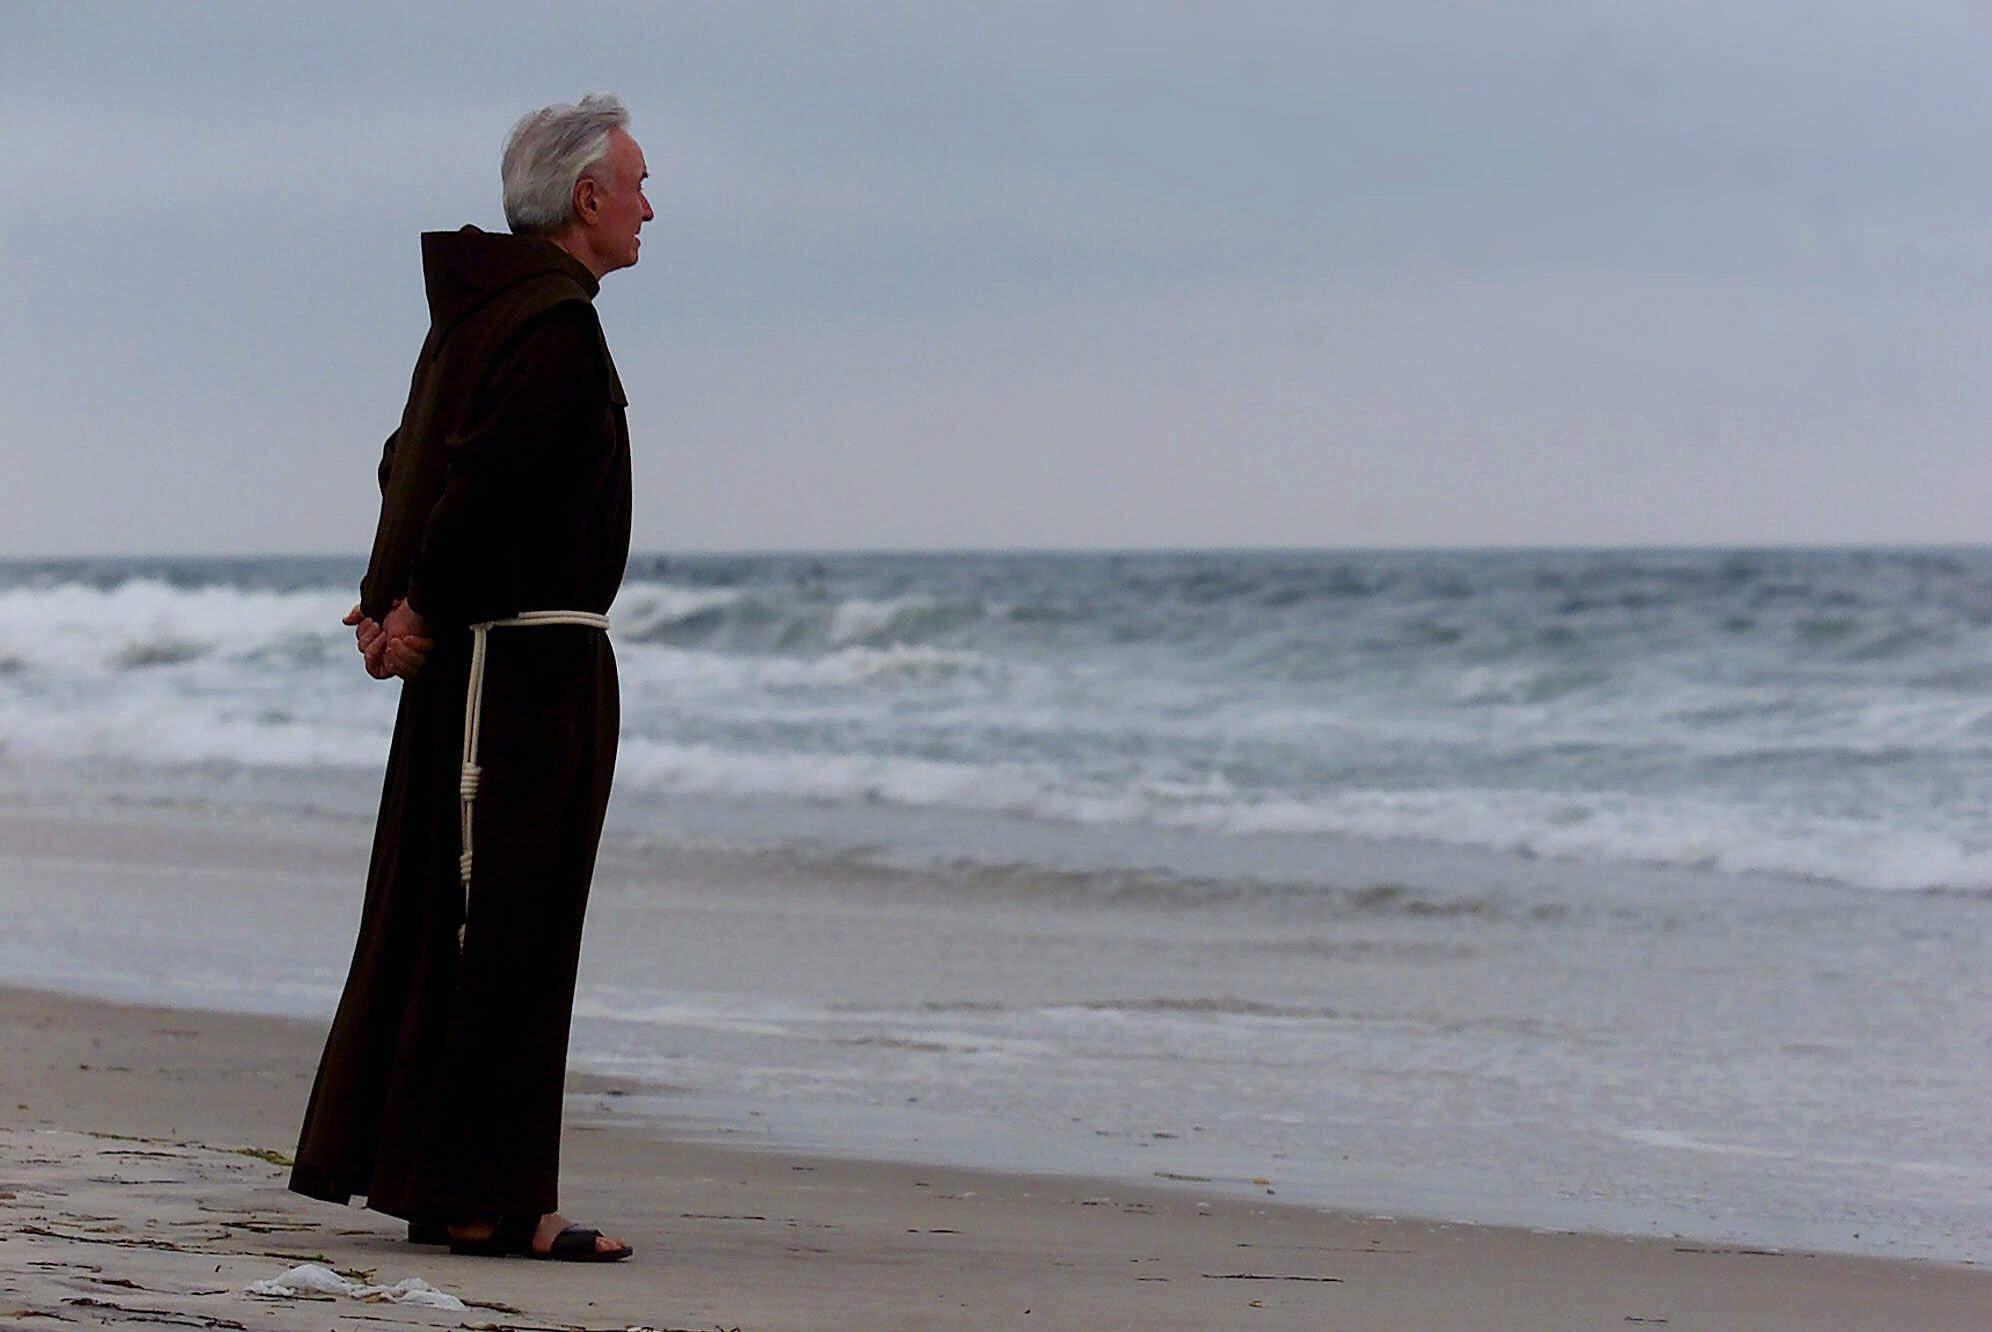 The Rev. Mychal Judge, who was the New York City Fire Department chaplain, stands on the Atlantic shore before a service where candles were lit for the victims of TWA Flight 800 on July 17, 2000, at Smith Point Park on Long Island.